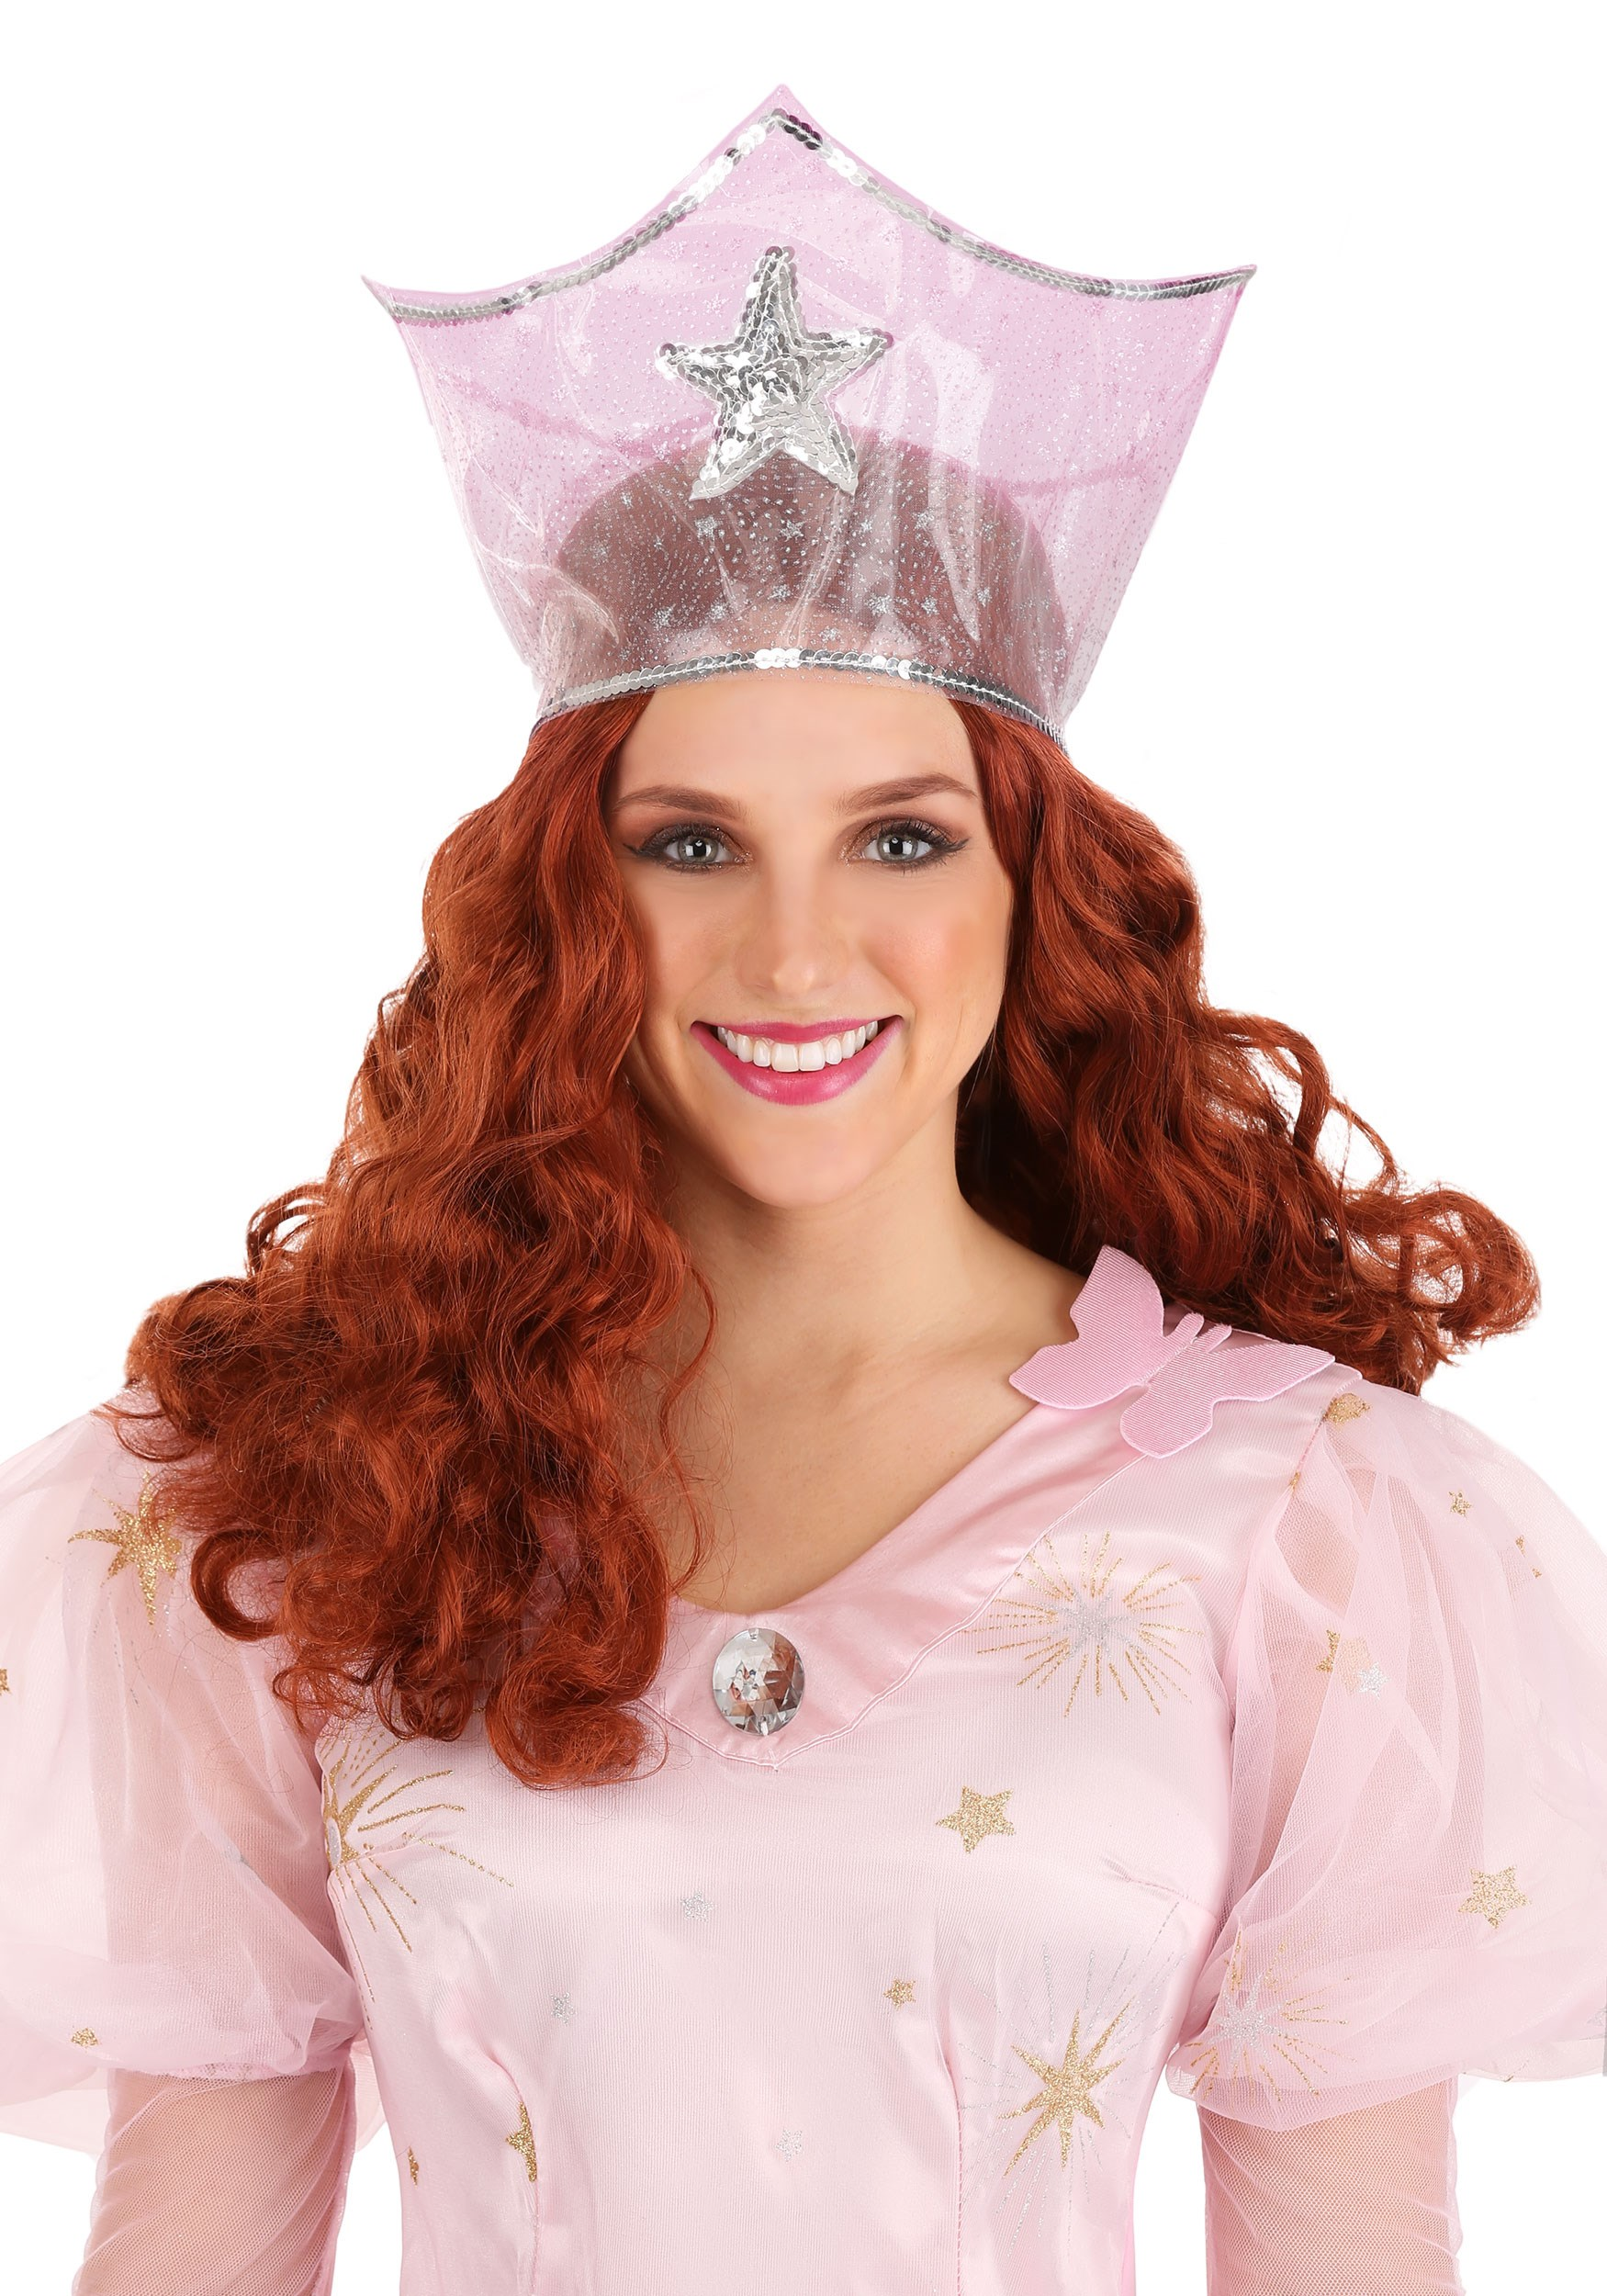 Glinda the good witch crown template search for pictures glinda crown glinda the good witch crown template maxwellsz